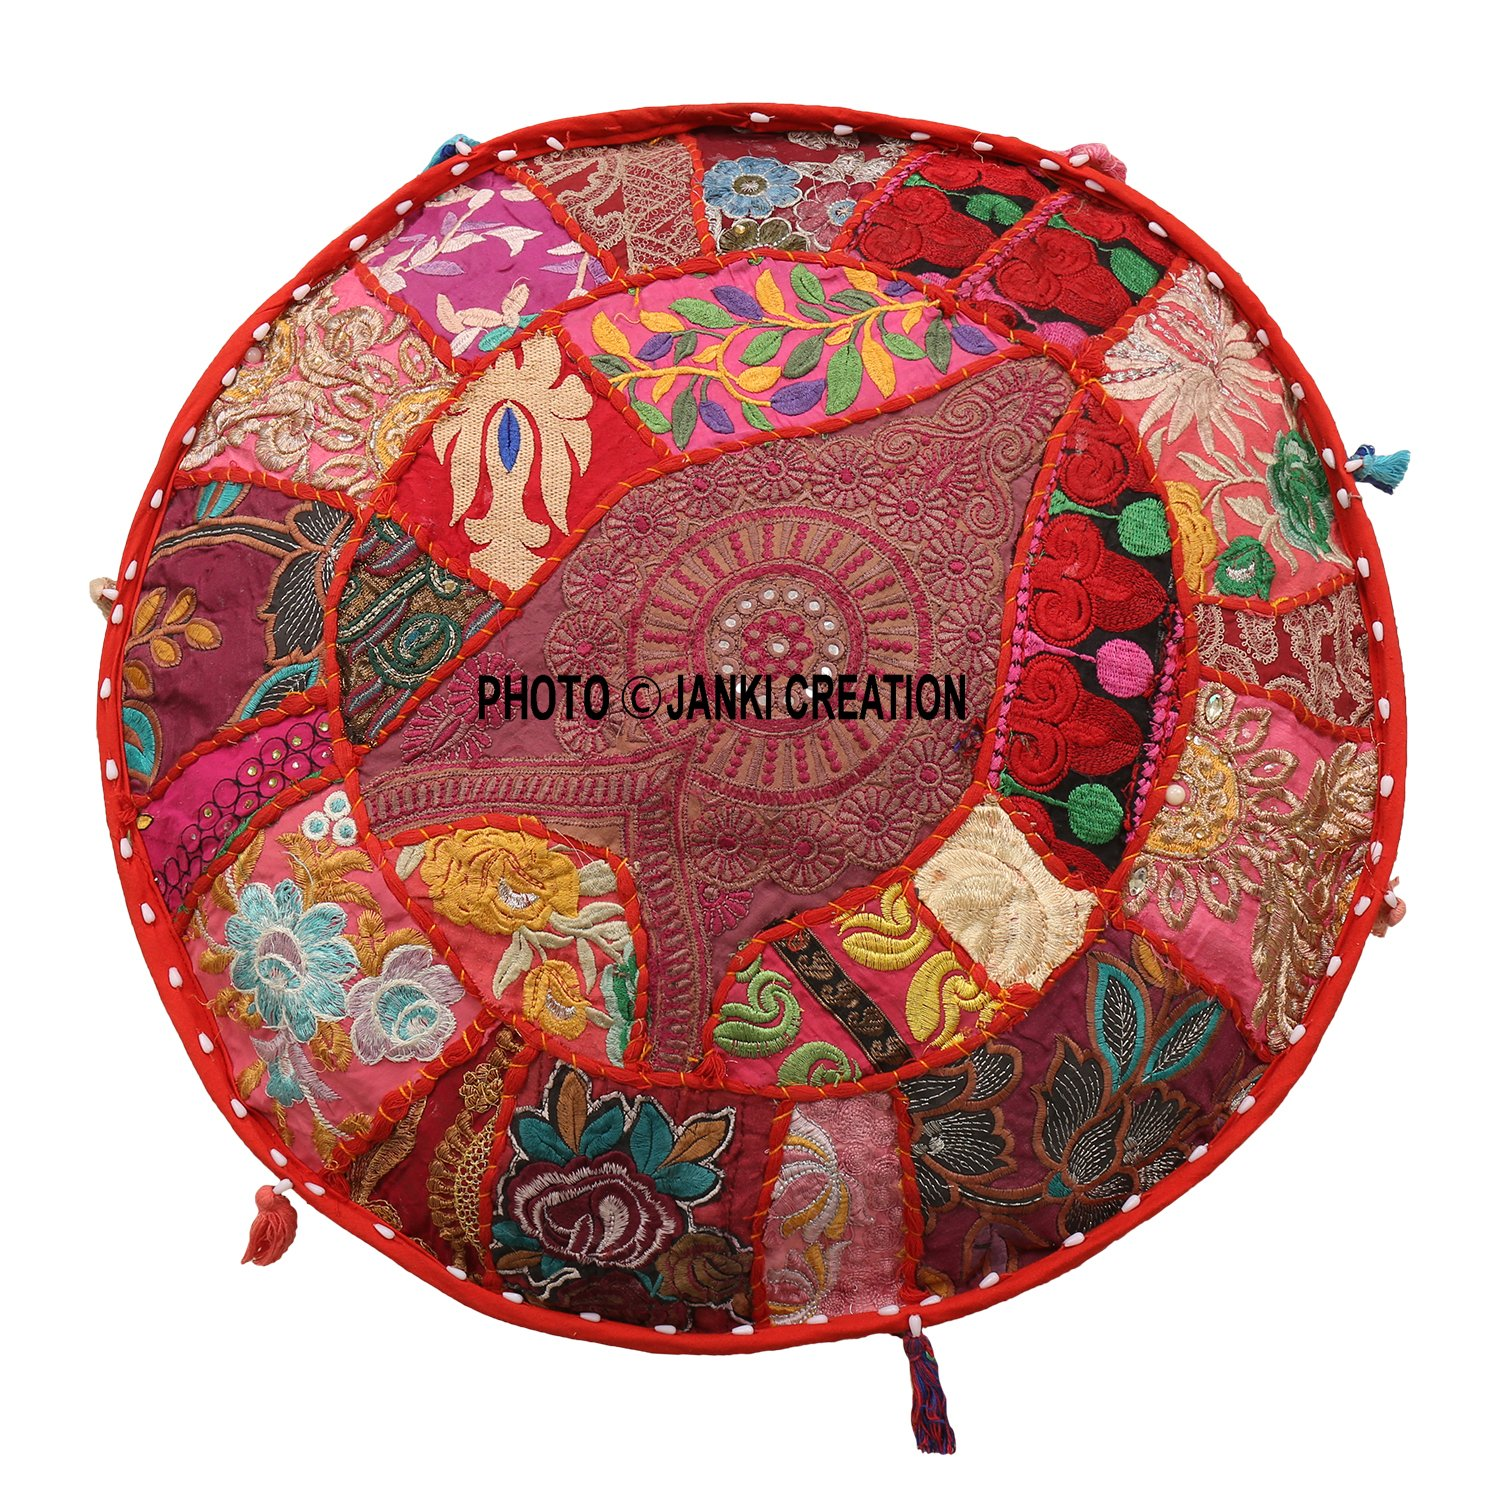 Indian Round Patchwork Embroidered Ottoman Pouf Bohemian Indian Decorative Patchwork Ottoman Pouf,Home Living Room Vintage Pouf Size 13 X 18 X 18 Inches Embellished Ottoman Stool Pouf Cover,Home Decor